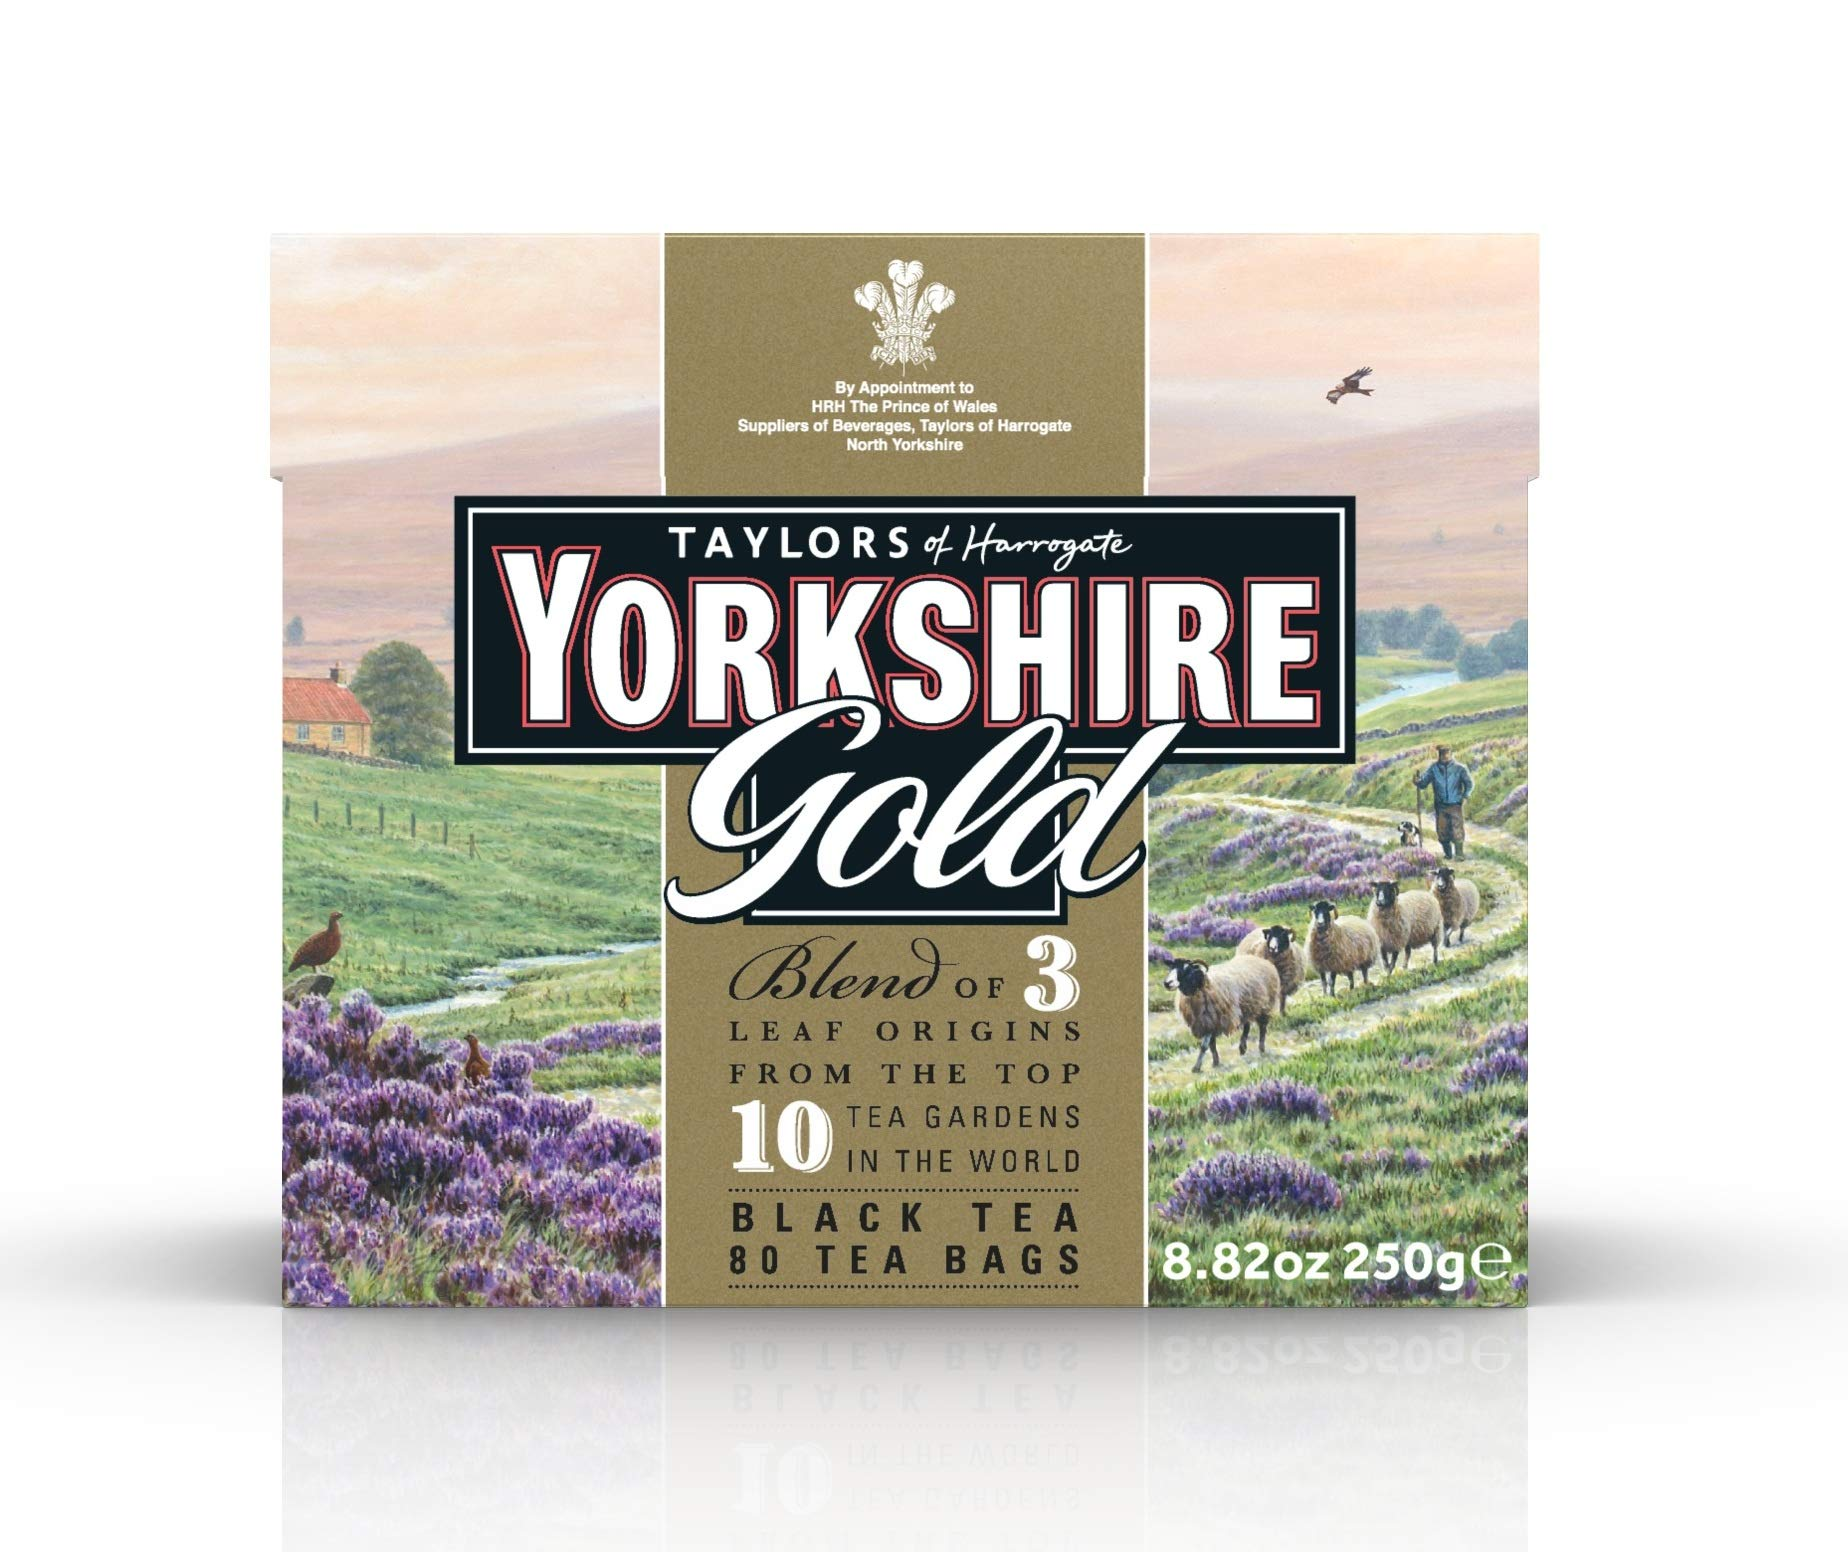 Taylors of Harrogate Yorkshire Gold, 80 Teabags, (Pack of 5) by Yorkshire Tea